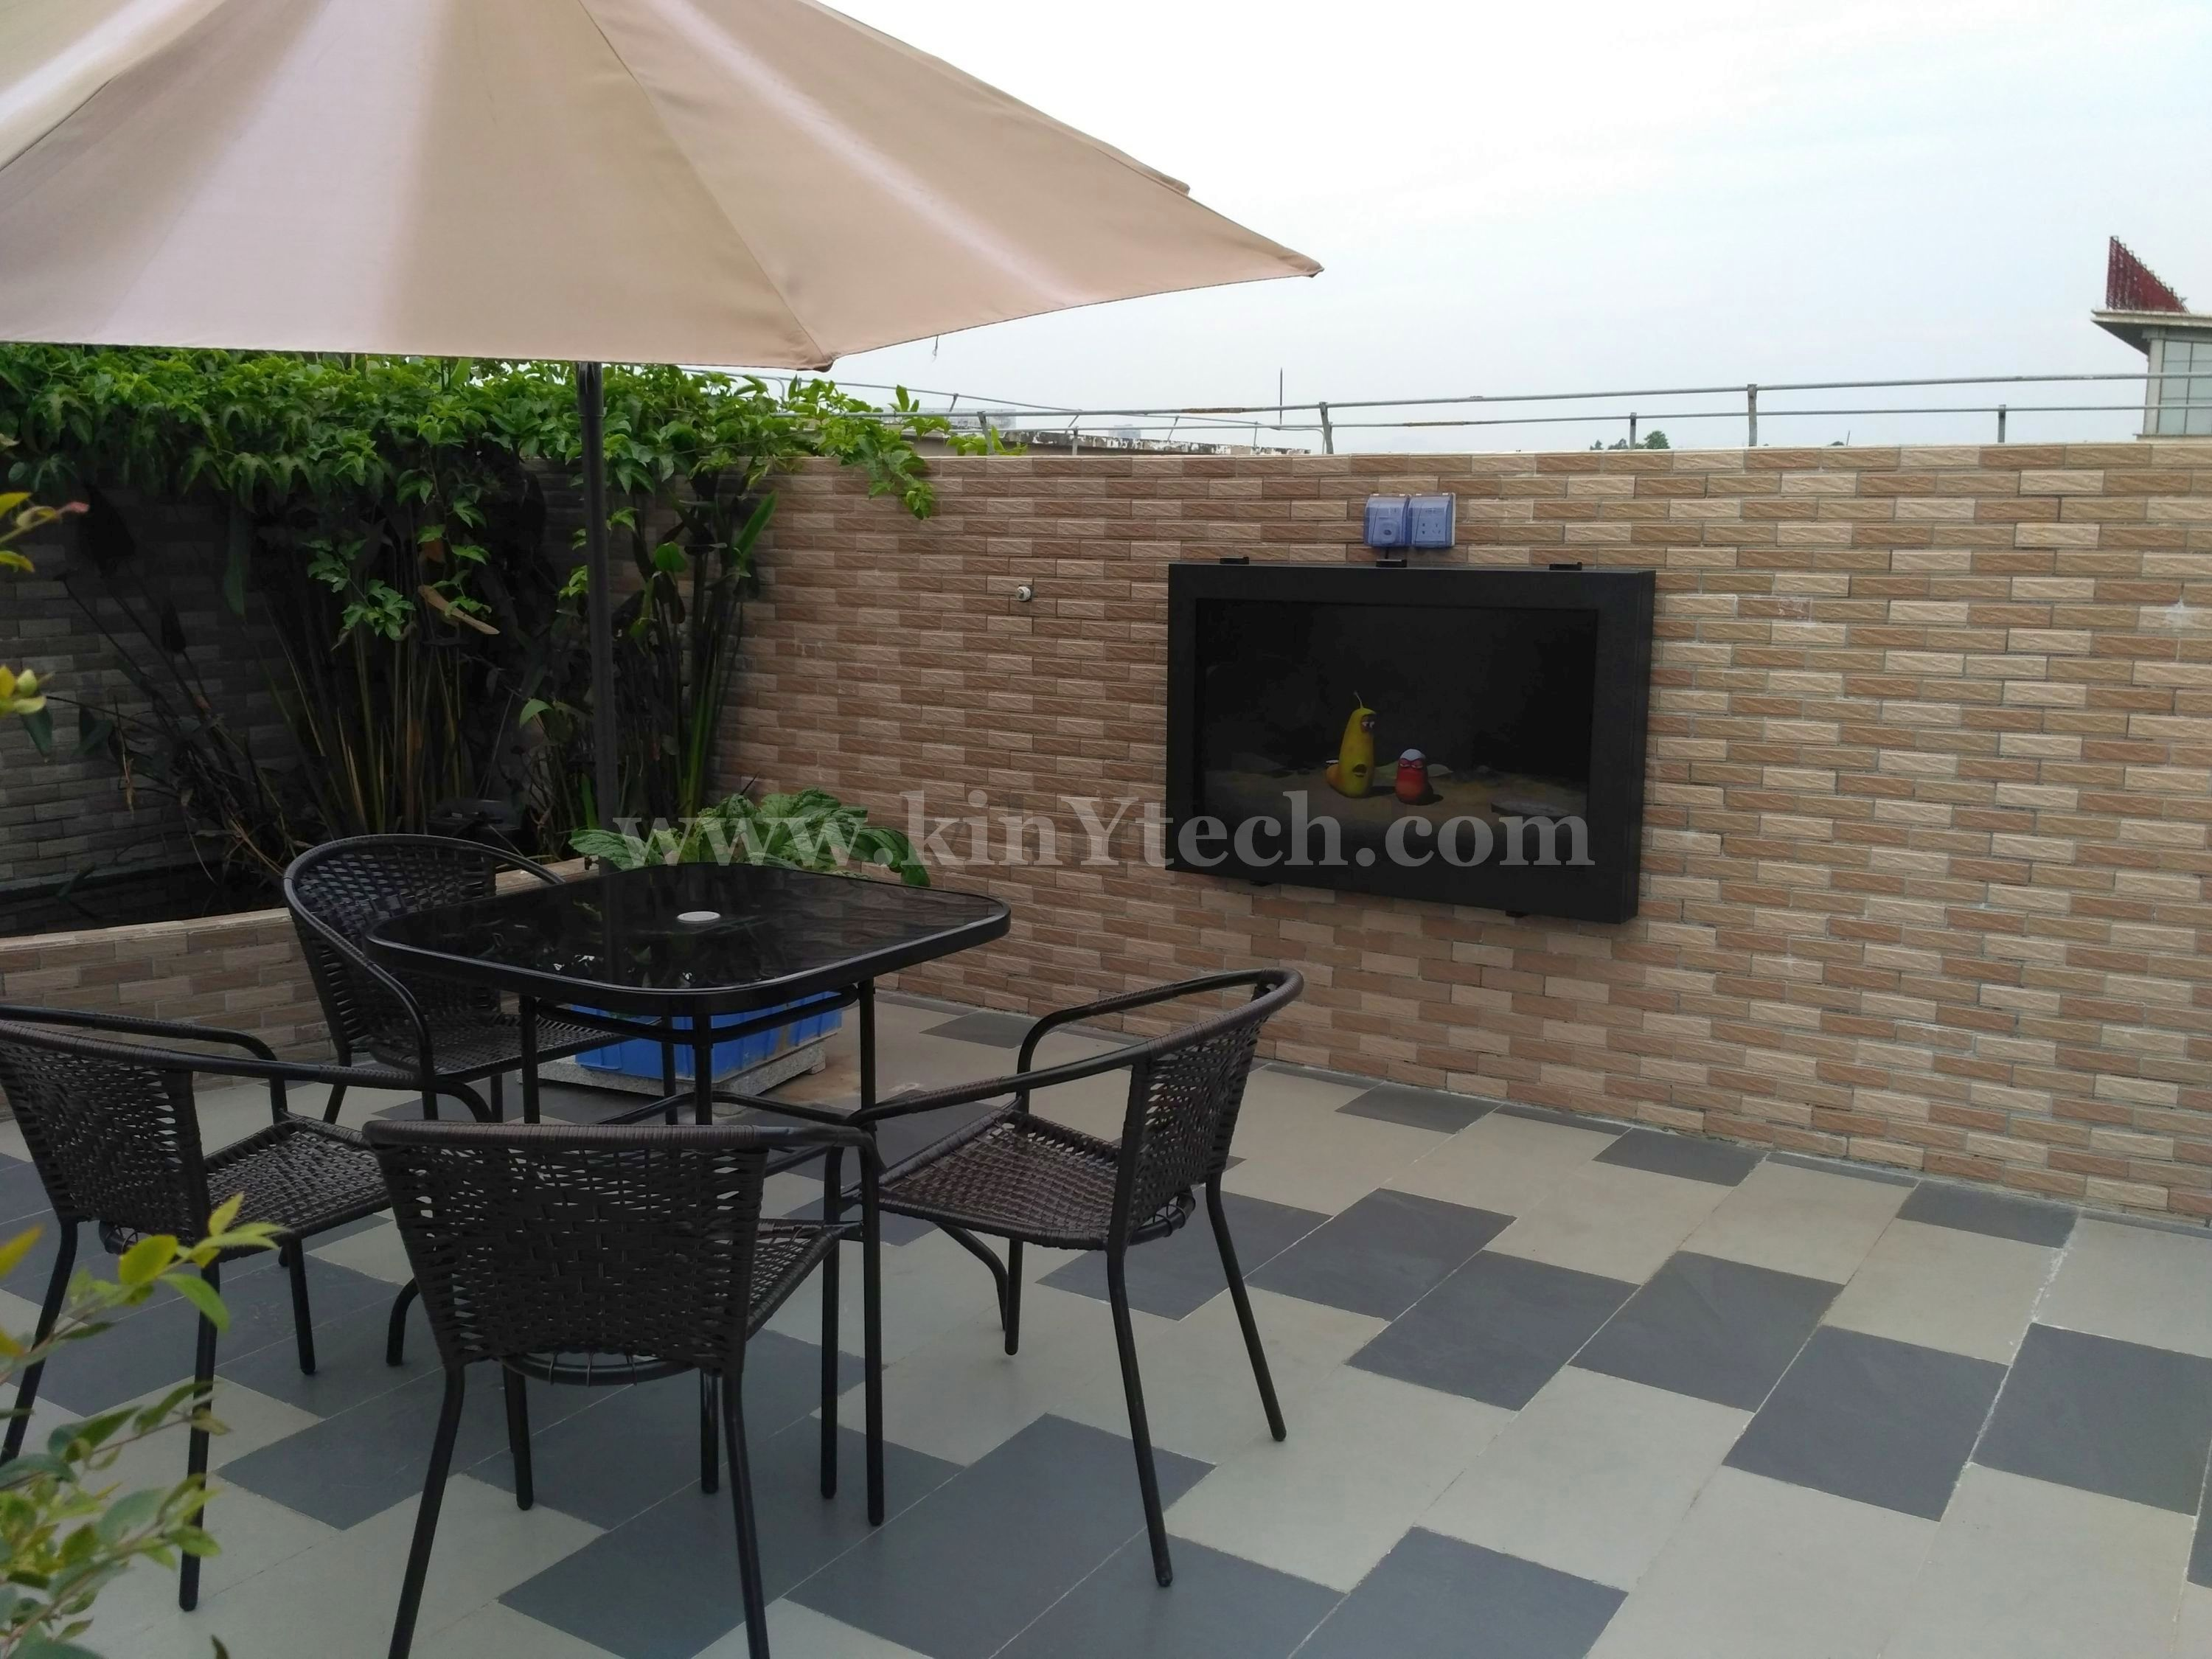 Marvelous Outdoor TV Box From Kinytech China.,waterproof TV Case,outside TV Cabinet